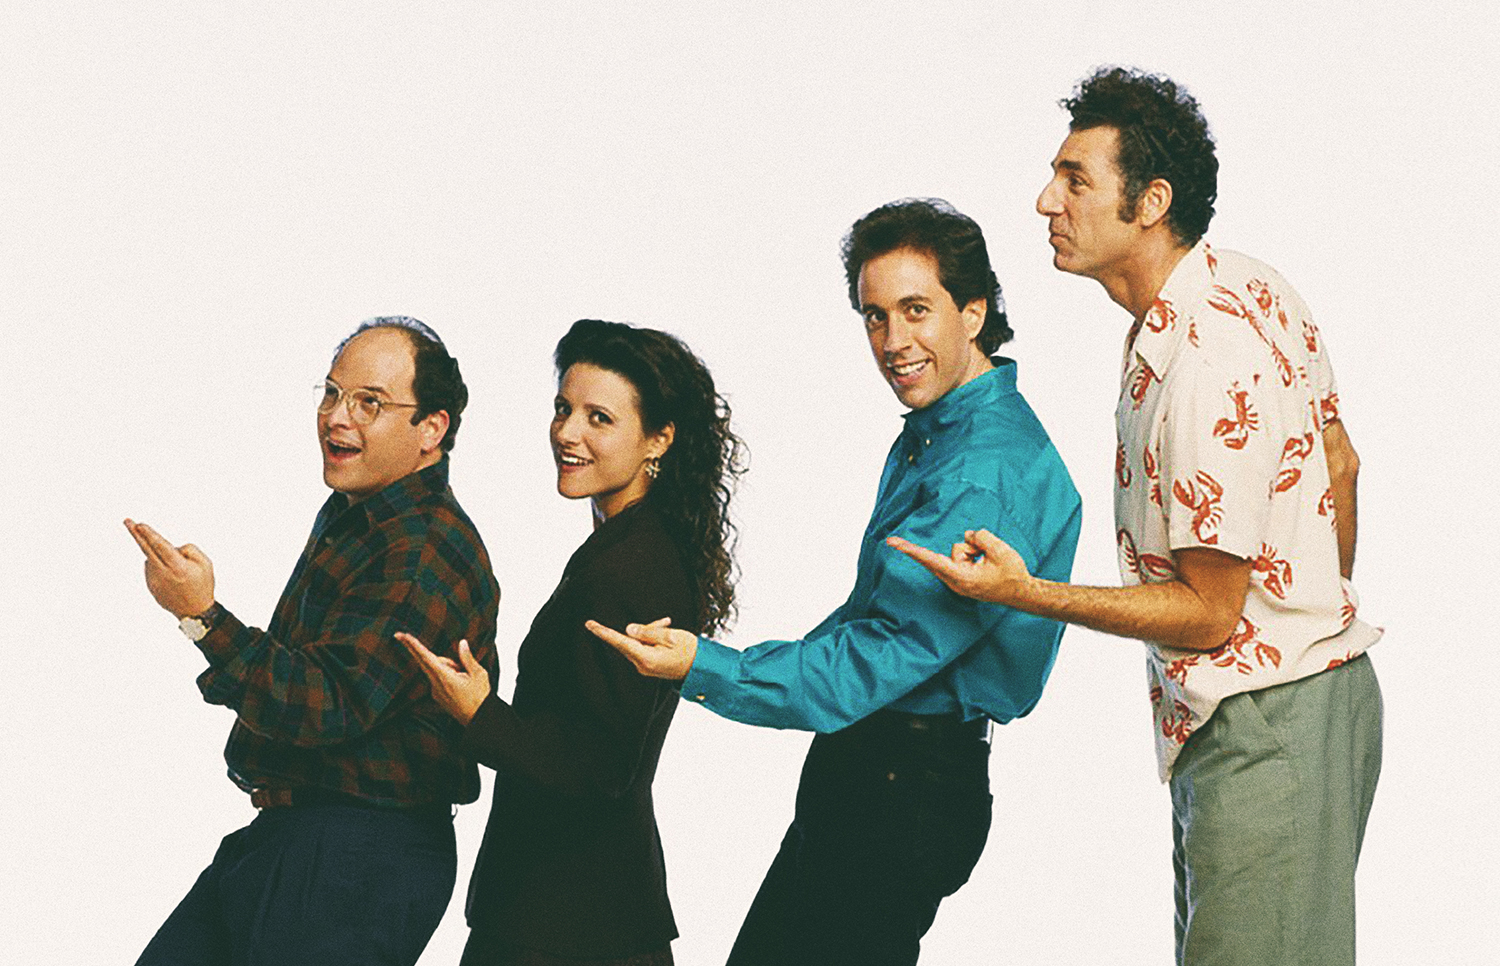 concepcion_news_seinfeld_01.jpg